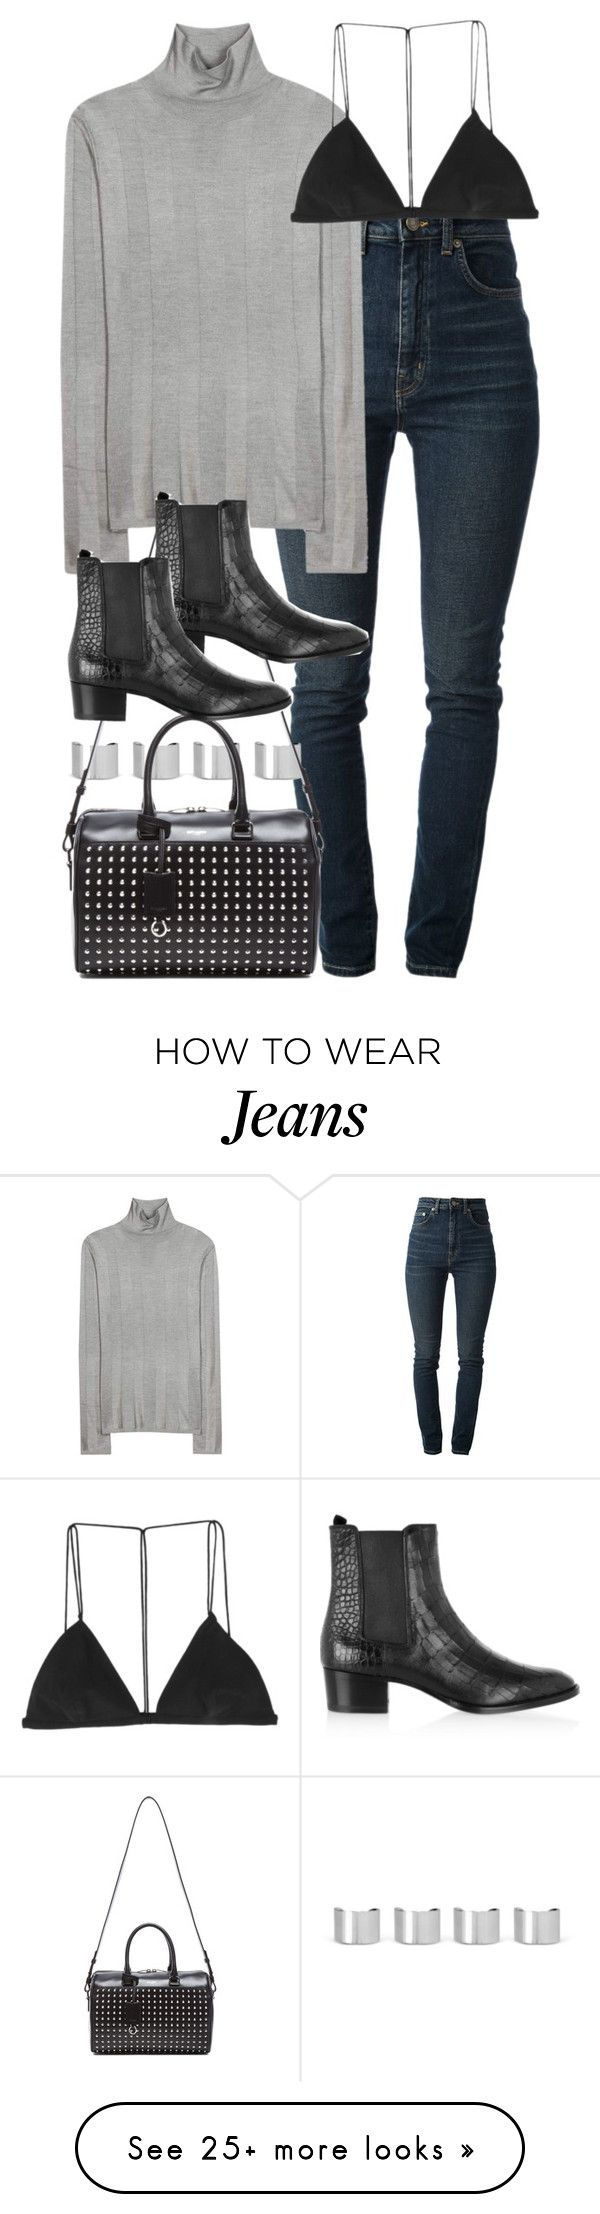 """Untitled #1689"" by sophiasstyle on Polyvore featuring Yves Saint Laurent, Maison Margiela, Balenciaga and Dion Lee"